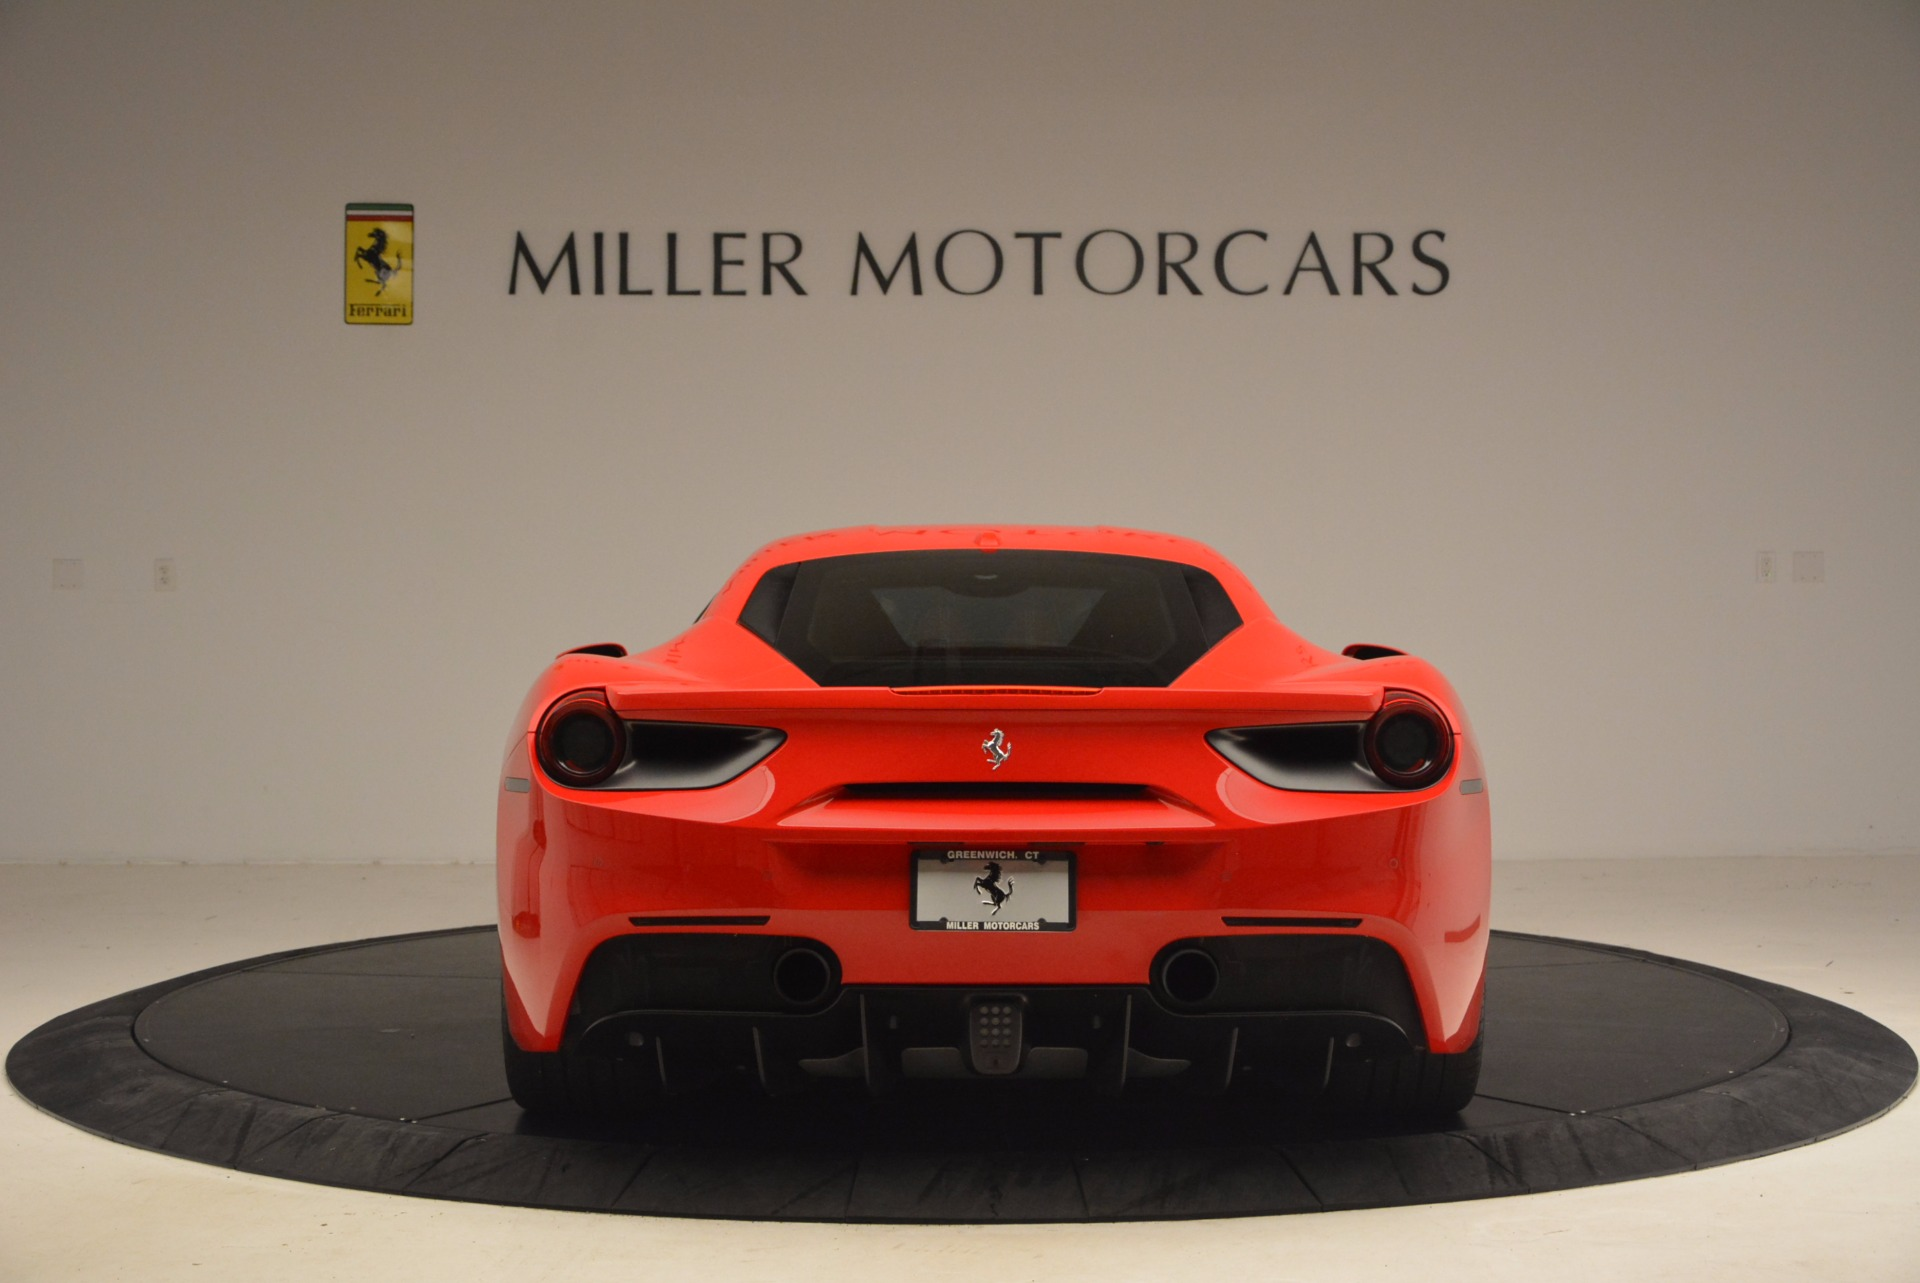 ferrari dealership essay Ferrari swot analysis what is swot analysis swot stands for strengths, weaknesses, opportunities, and threats swot analysis involves identifying your business's strengths and weaknesses, and examining the opportunities and threats which may affect you.